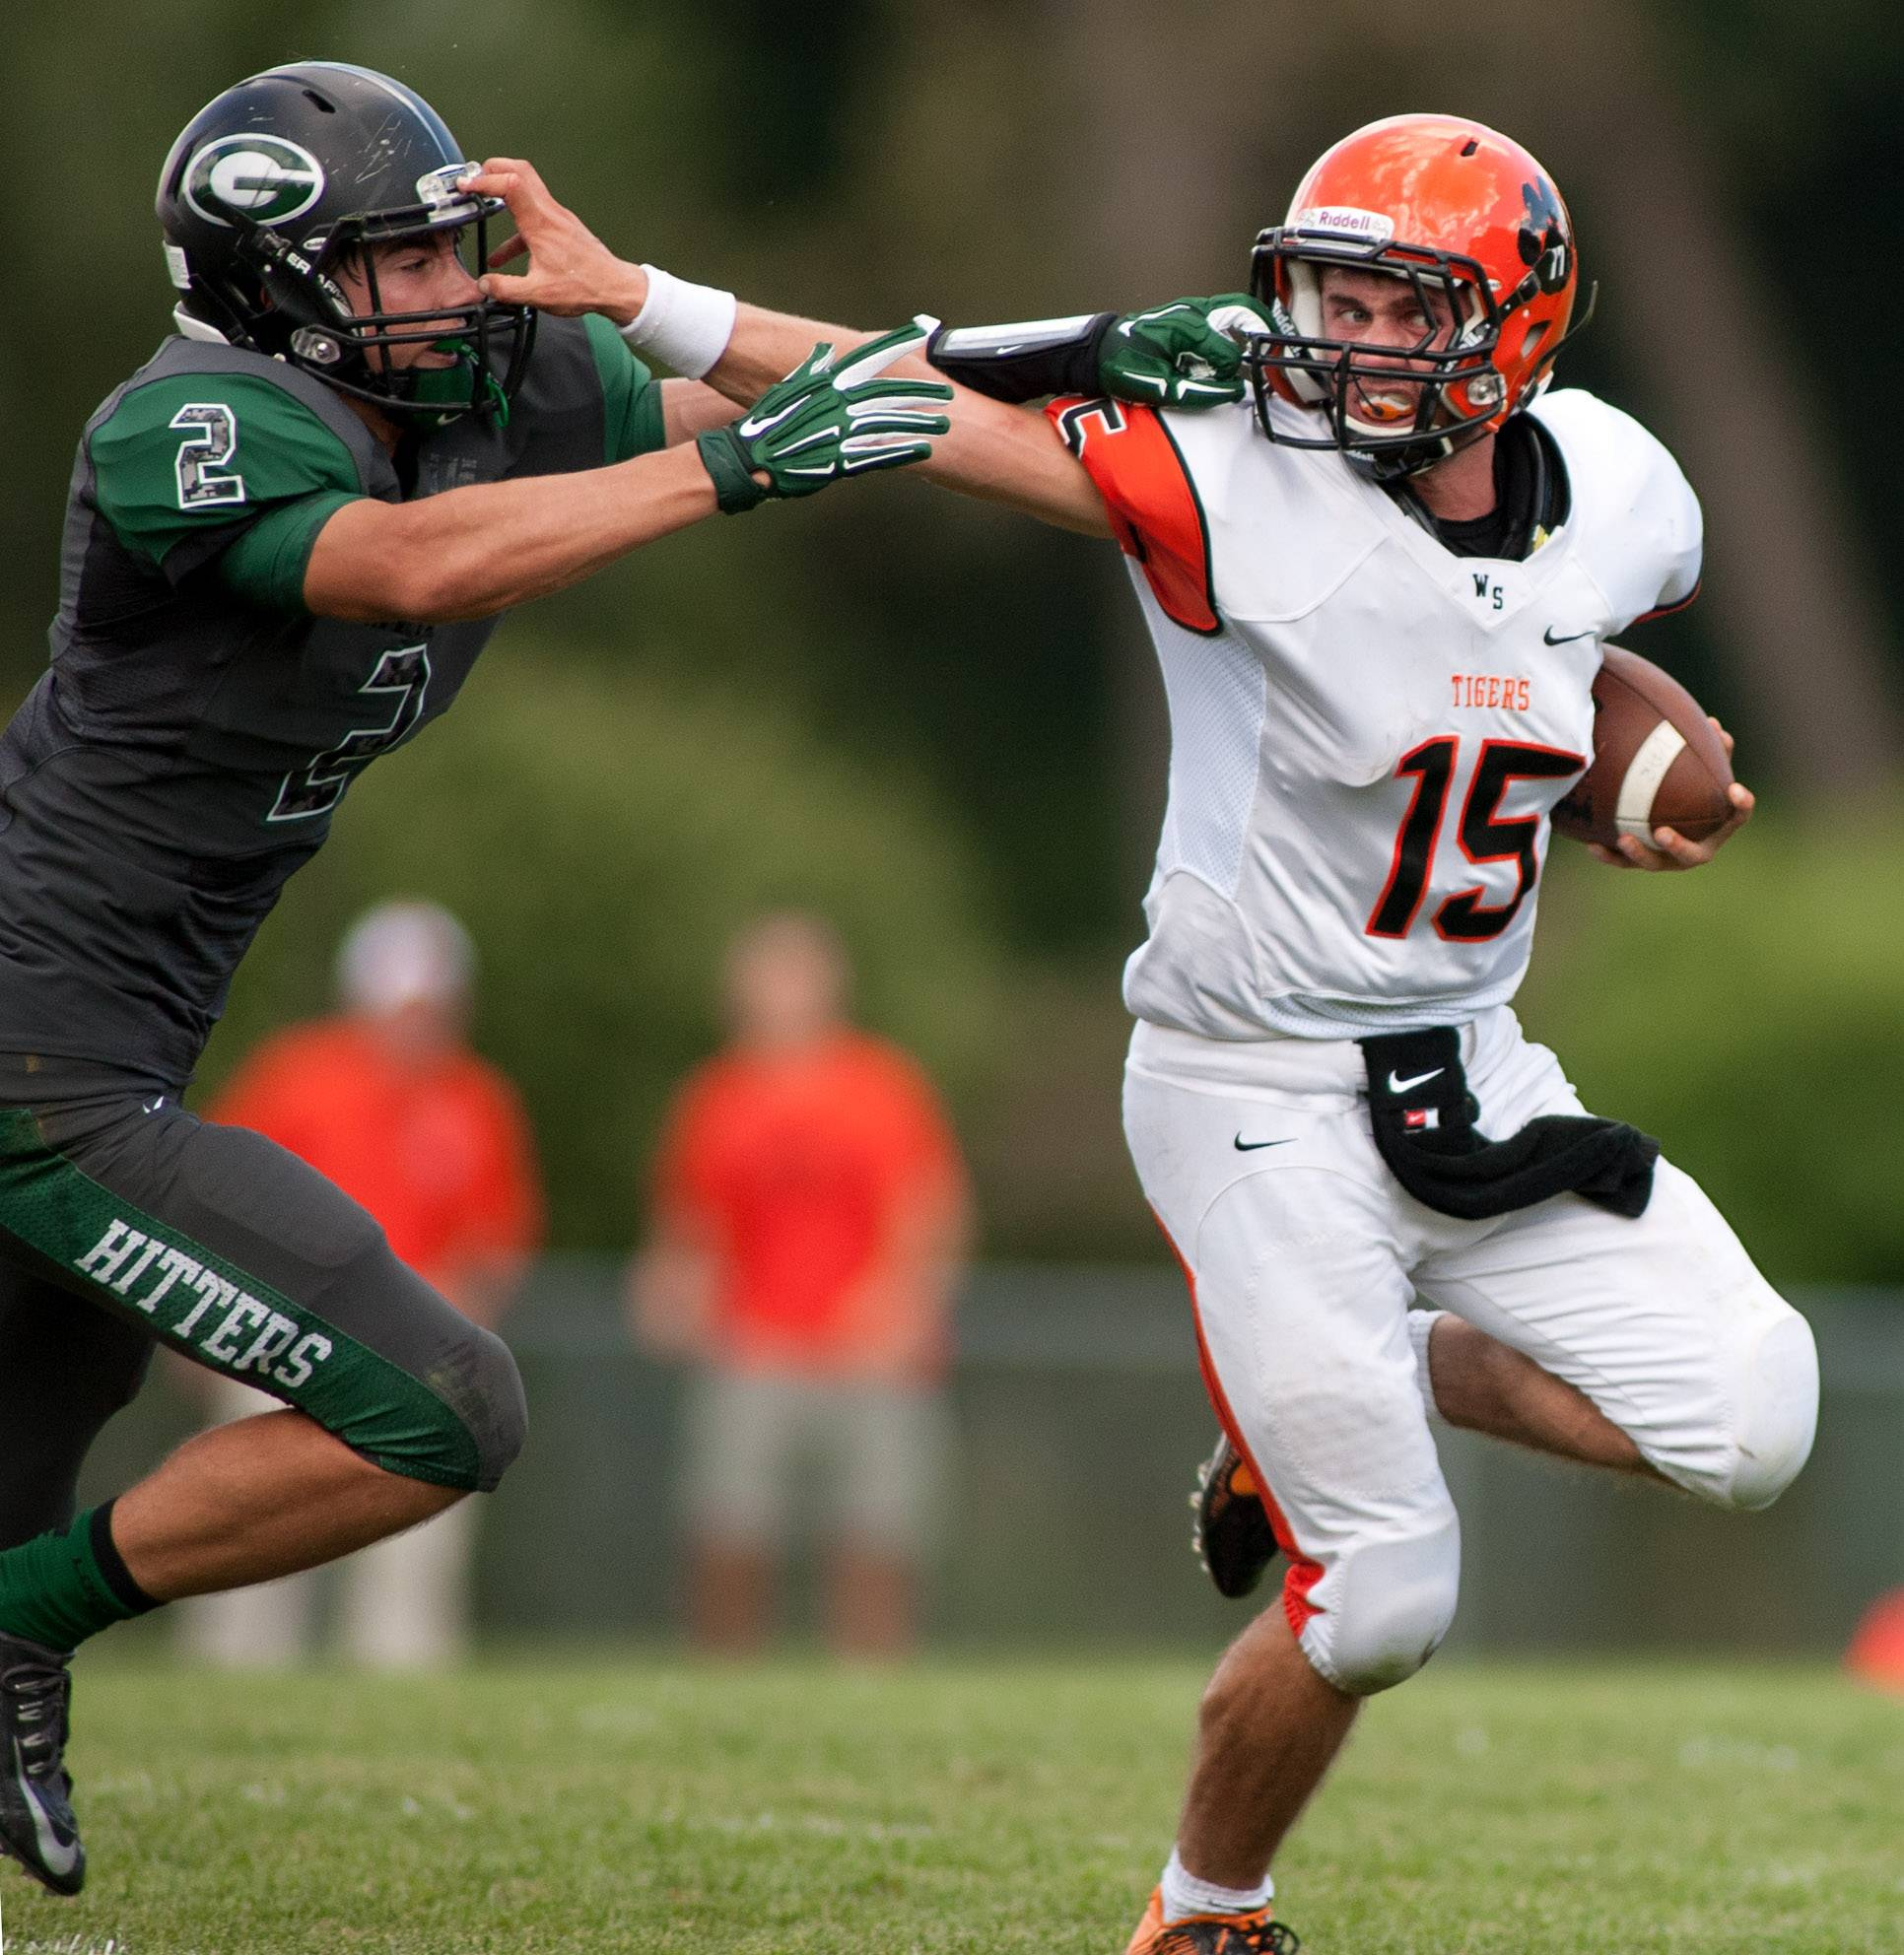 Glenbard West's Ben Marcus, left, and Wheaton Warrenville's Josh Prueter, right, tangle during first half action at Duchon Field.